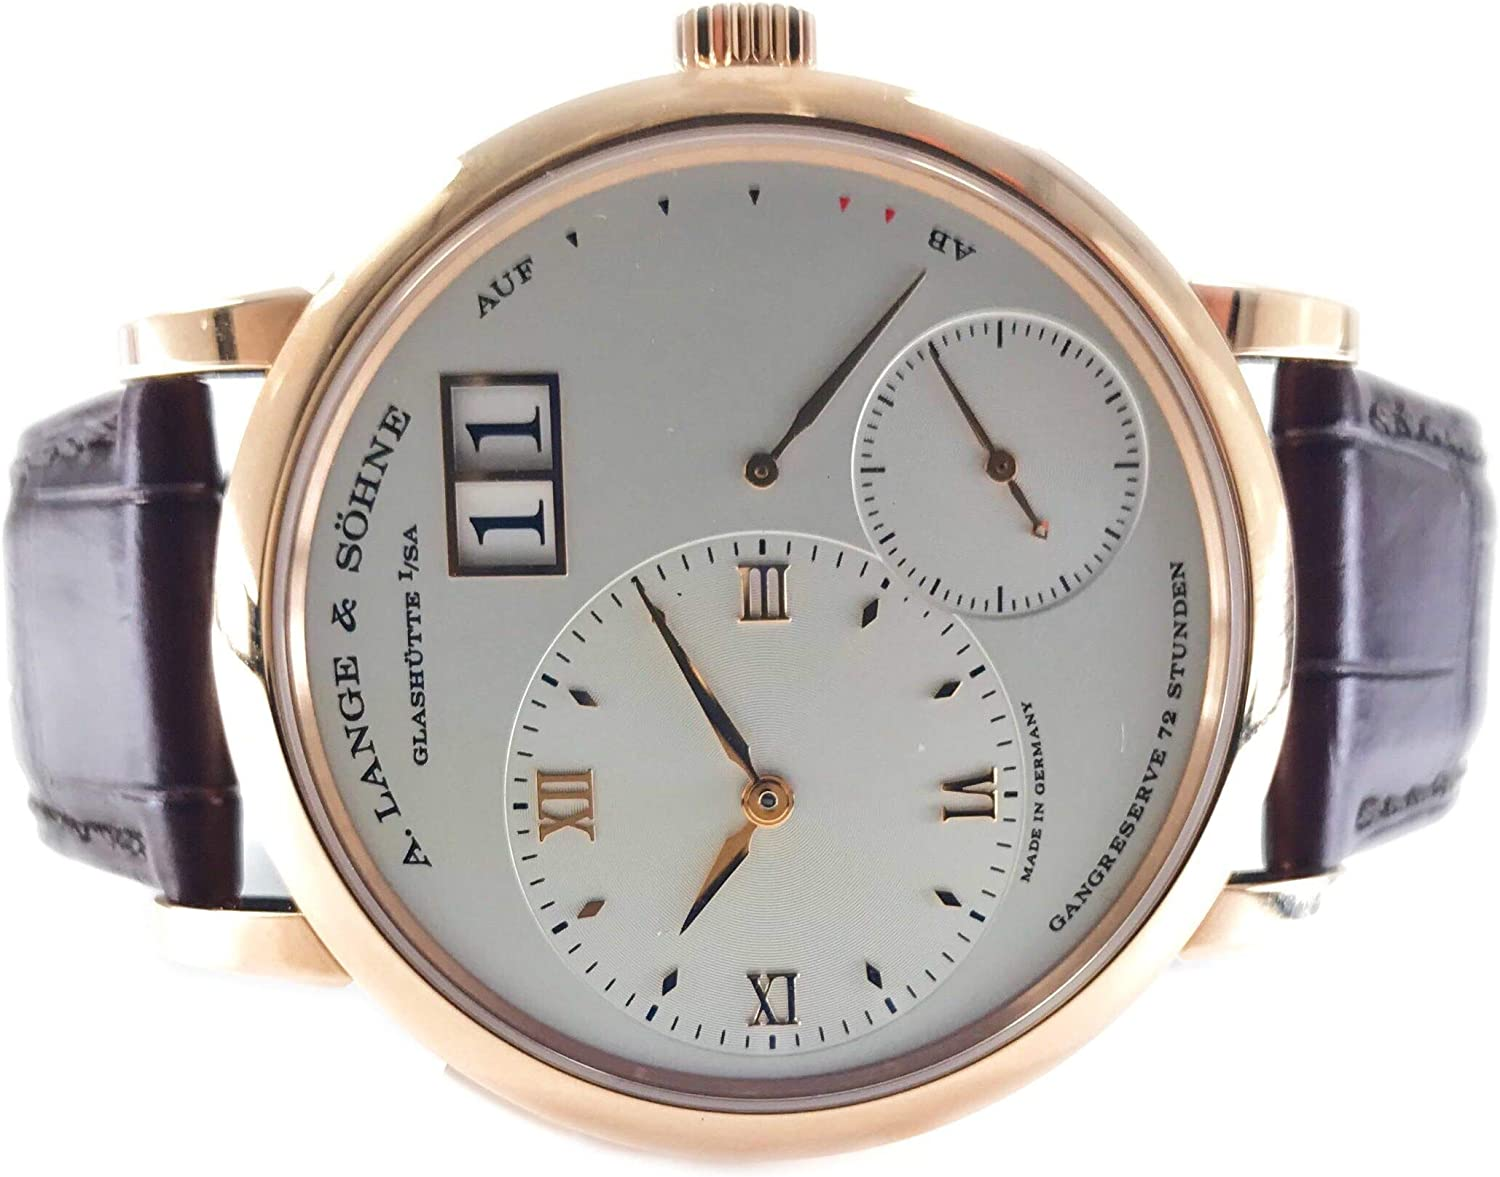 A. Lange & Söhne Grand Lange 1 18K Rose Gold Manual 117.032 - Certified Pre-Owned